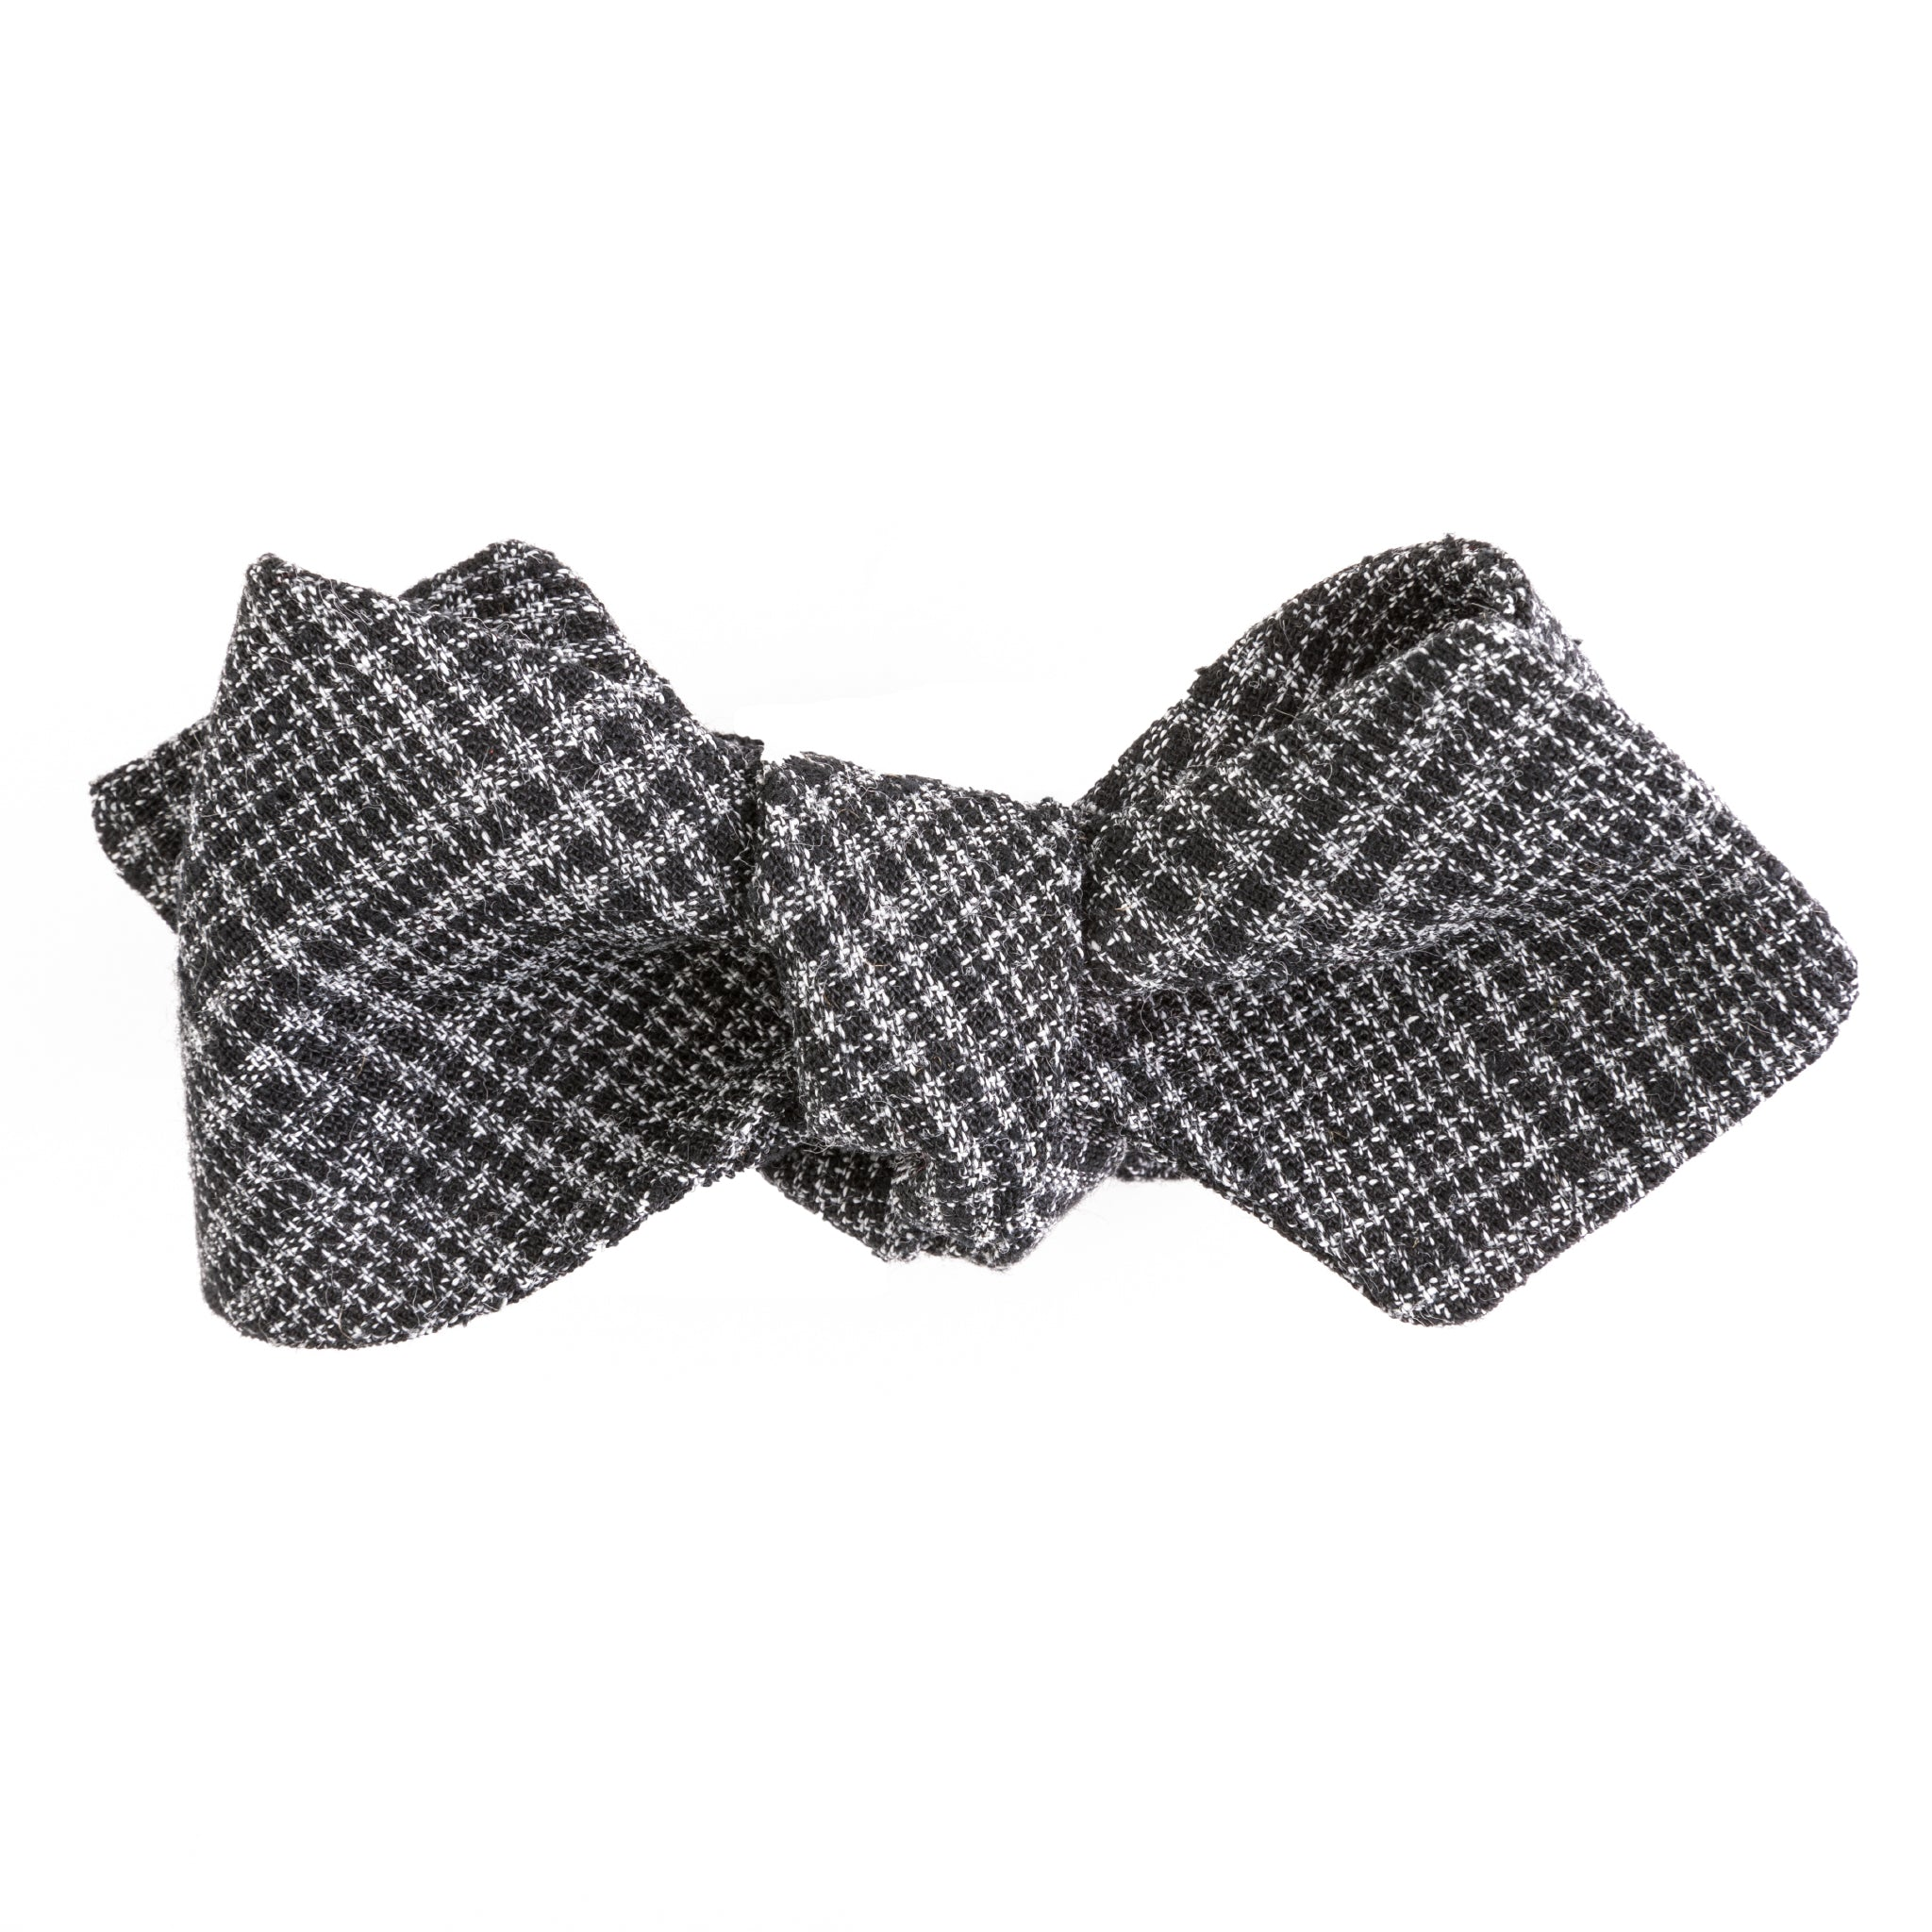 1960's Charcoal Glen Plaid Cotton Diamond Point Bow Tie